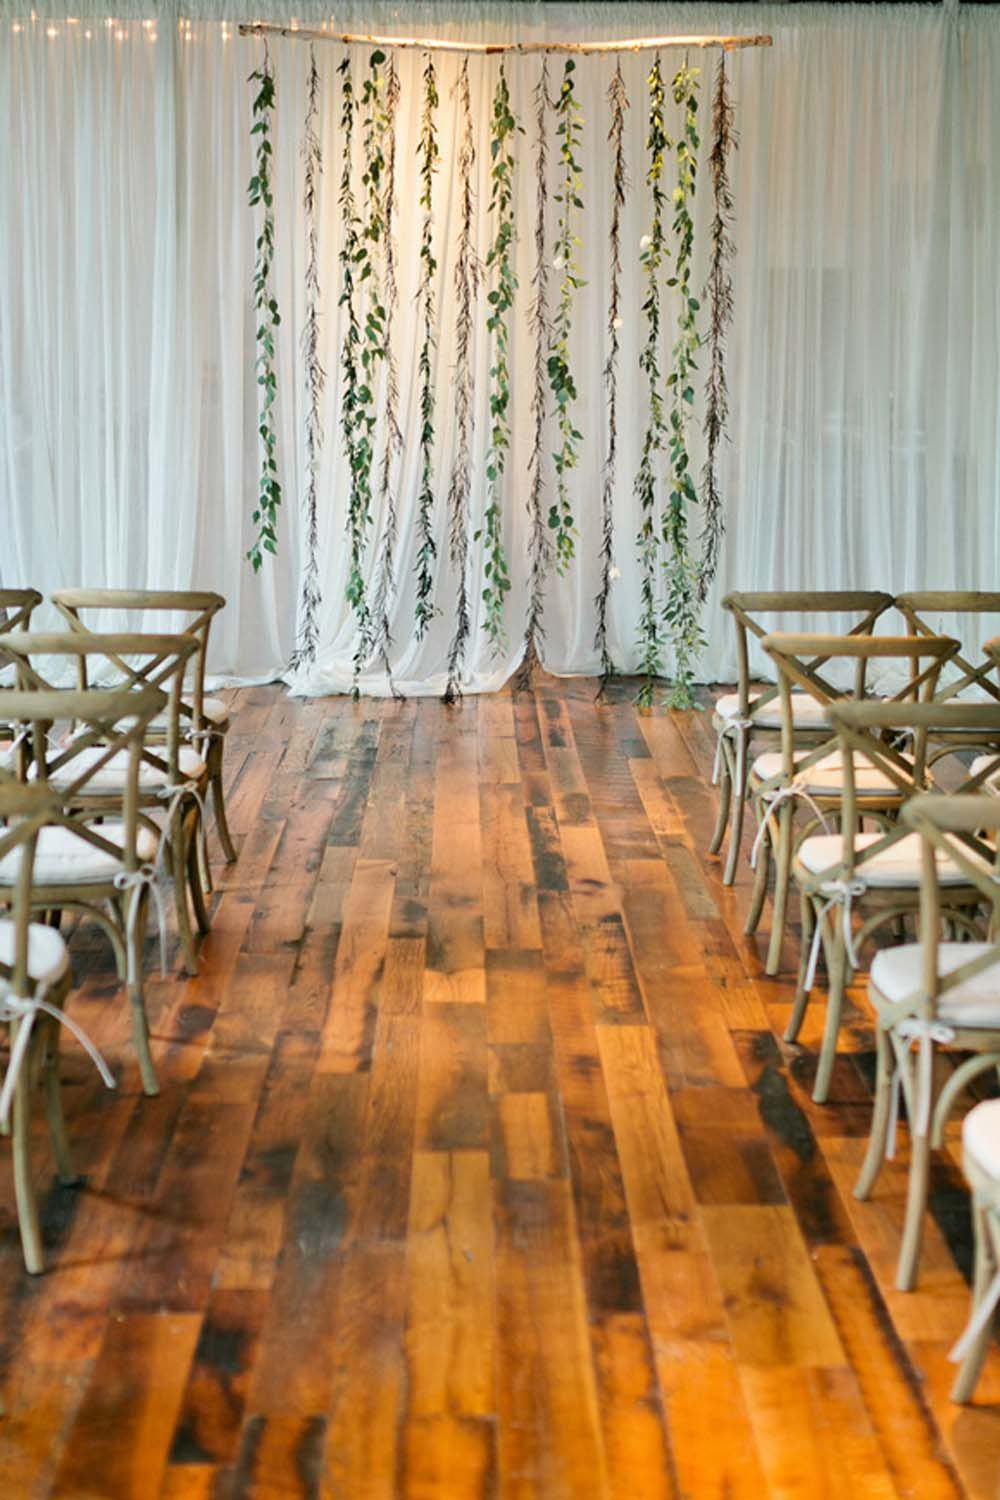 Diy ceremony backdrops that wont break the bank boda deberes y diy ceremony backdrops that wont break the bank solutioingenieria Image collections